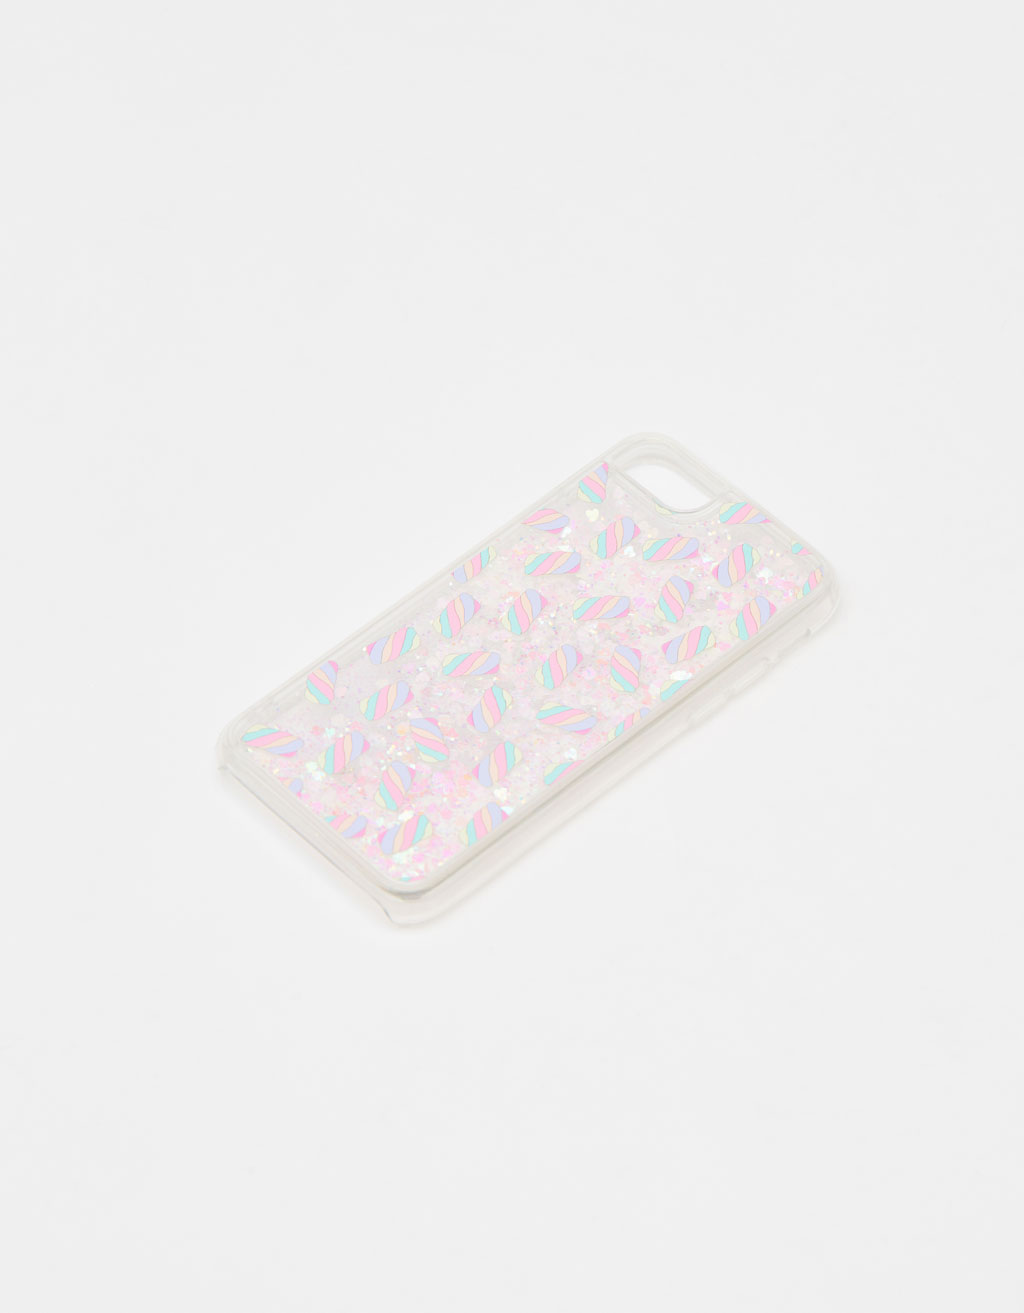 Carcasa purpurina iPhone 6 / 6S / 7/ 8